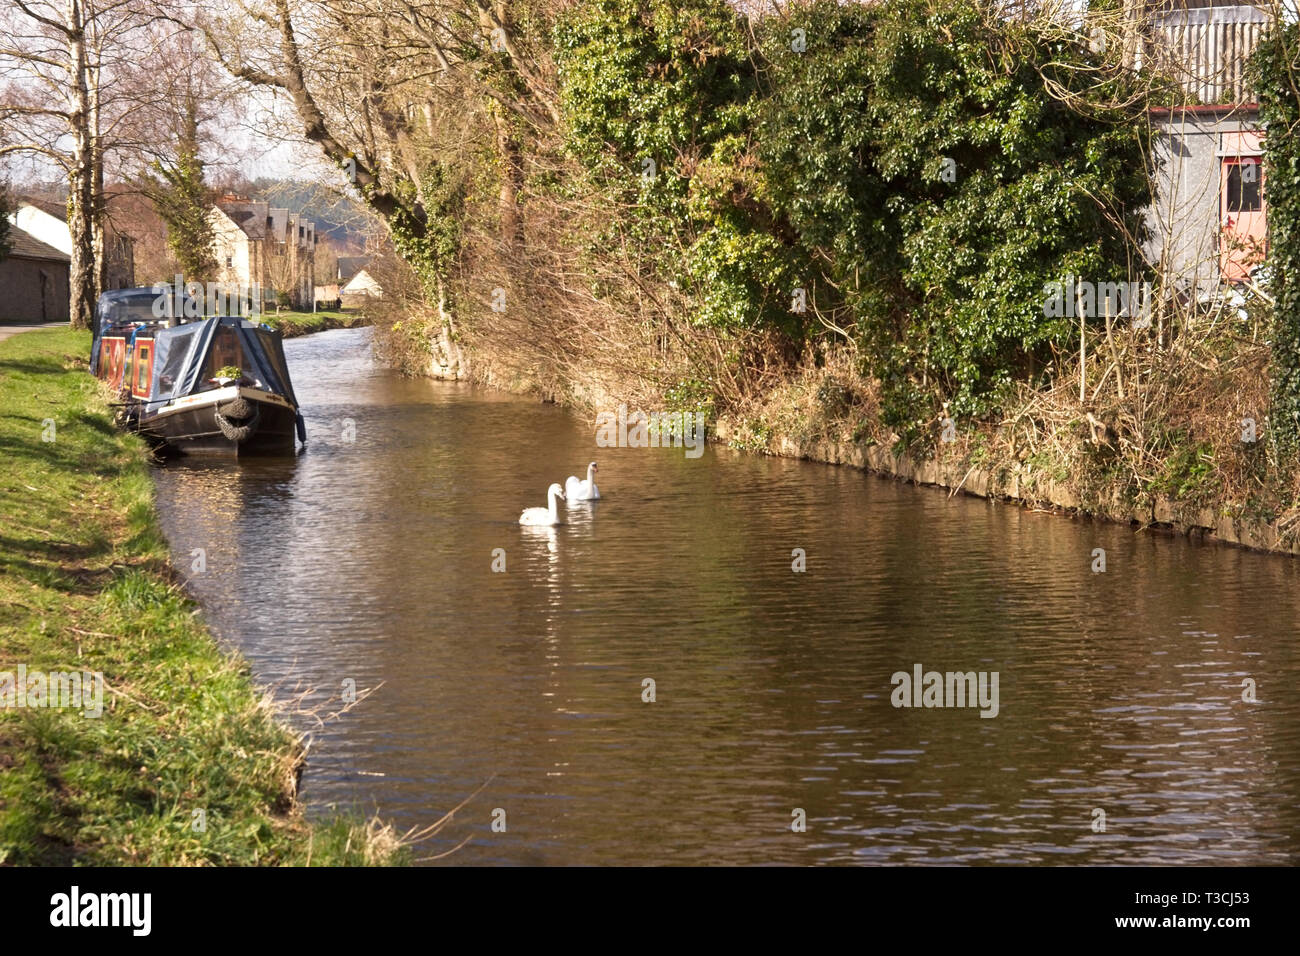 Canal waterway at Crickhowell, Brecon, Wales - Stock Image